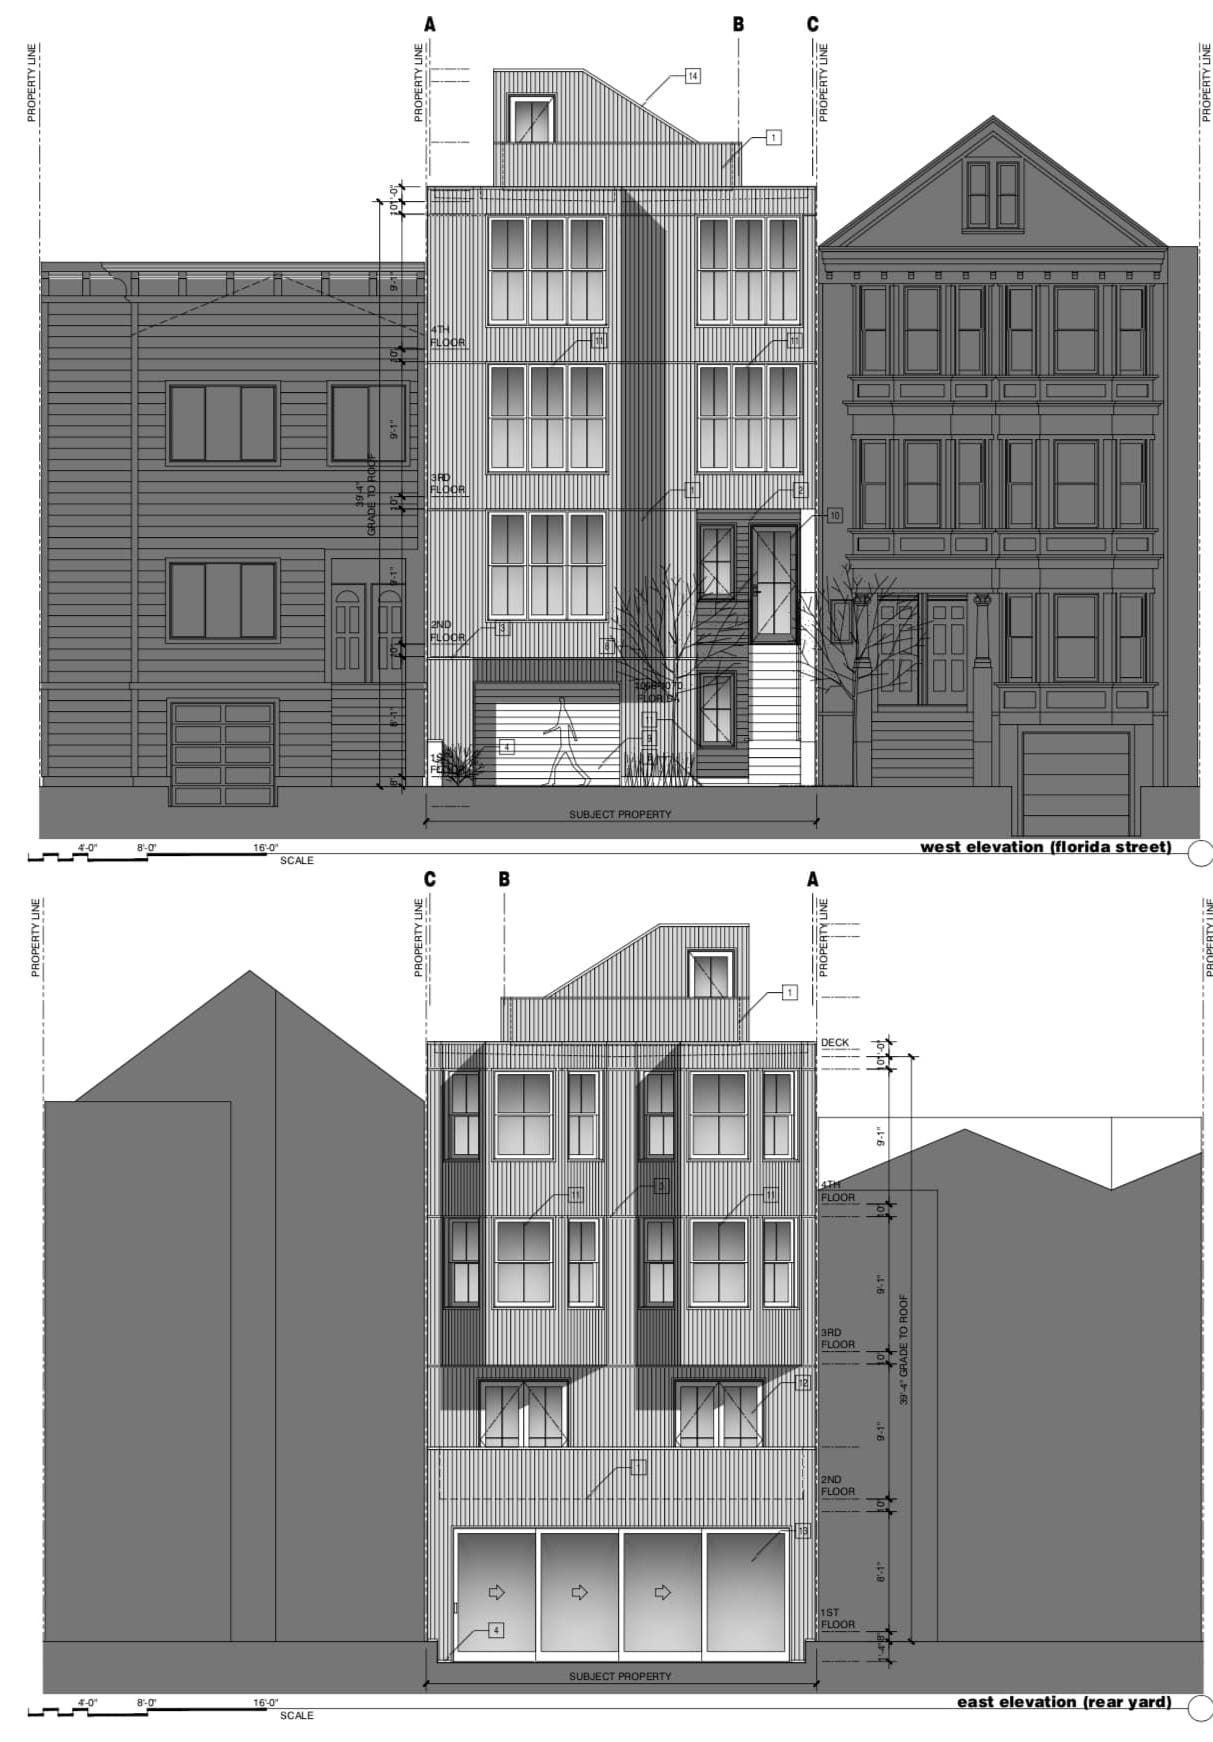 1068 Florida Street Elevations